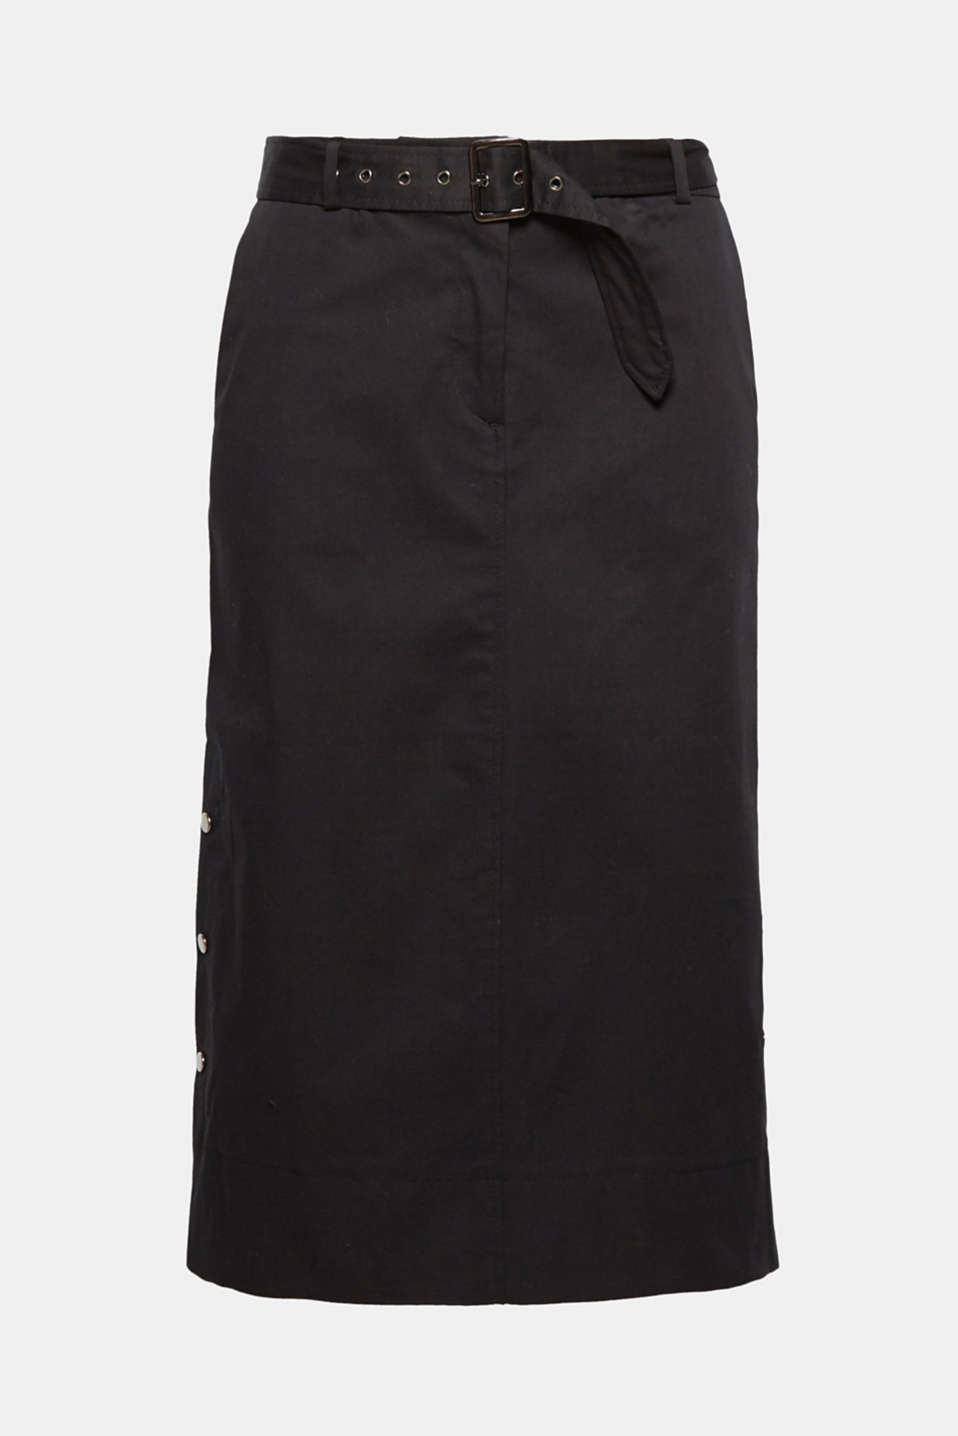 The metal press-stud plackets on the sides give this comfy, stretch cotton midi skirt a trendy twist.